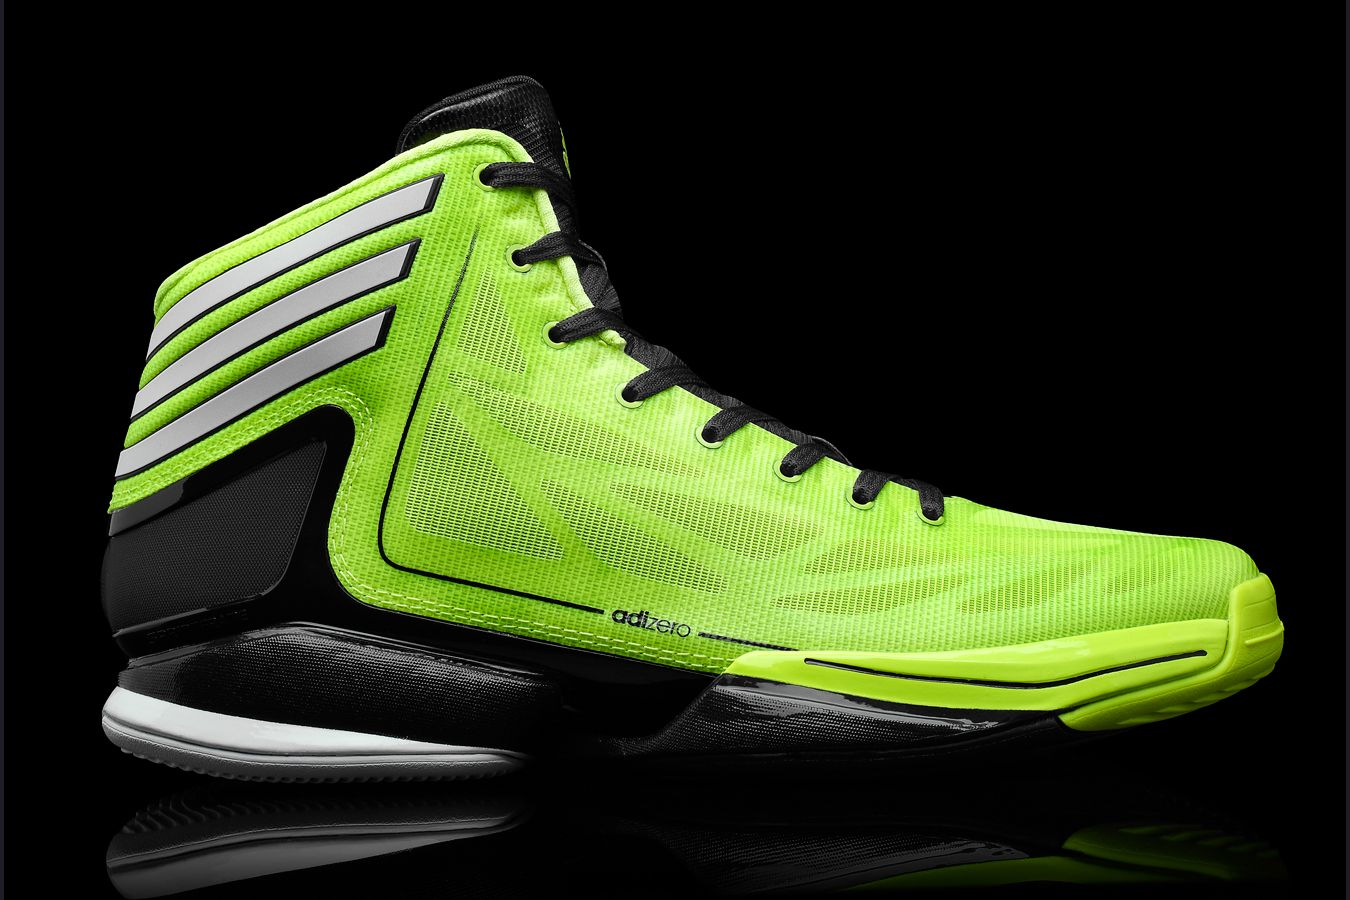 Adidas Adizero Crazy Light 2 in Electricity and Black colourway ... 93ffb99db4